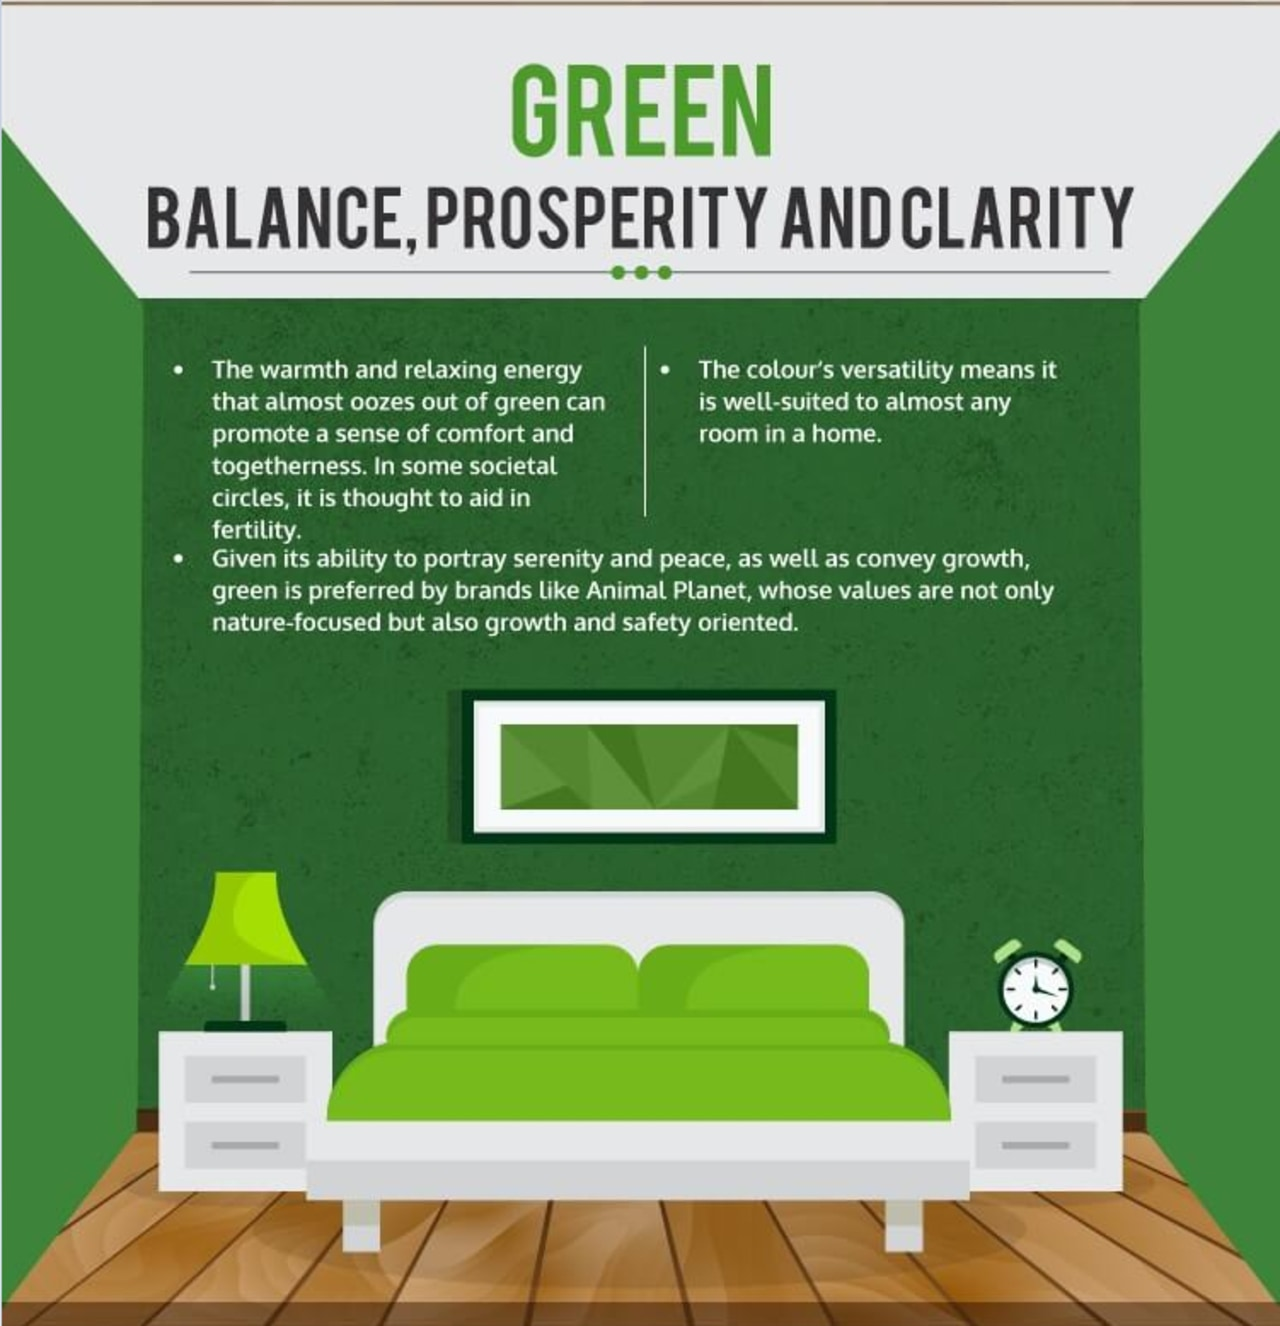 Brighten your home and mind with colour - couch, design, furniture, grass, green, interior design, rectangle, room, text, green